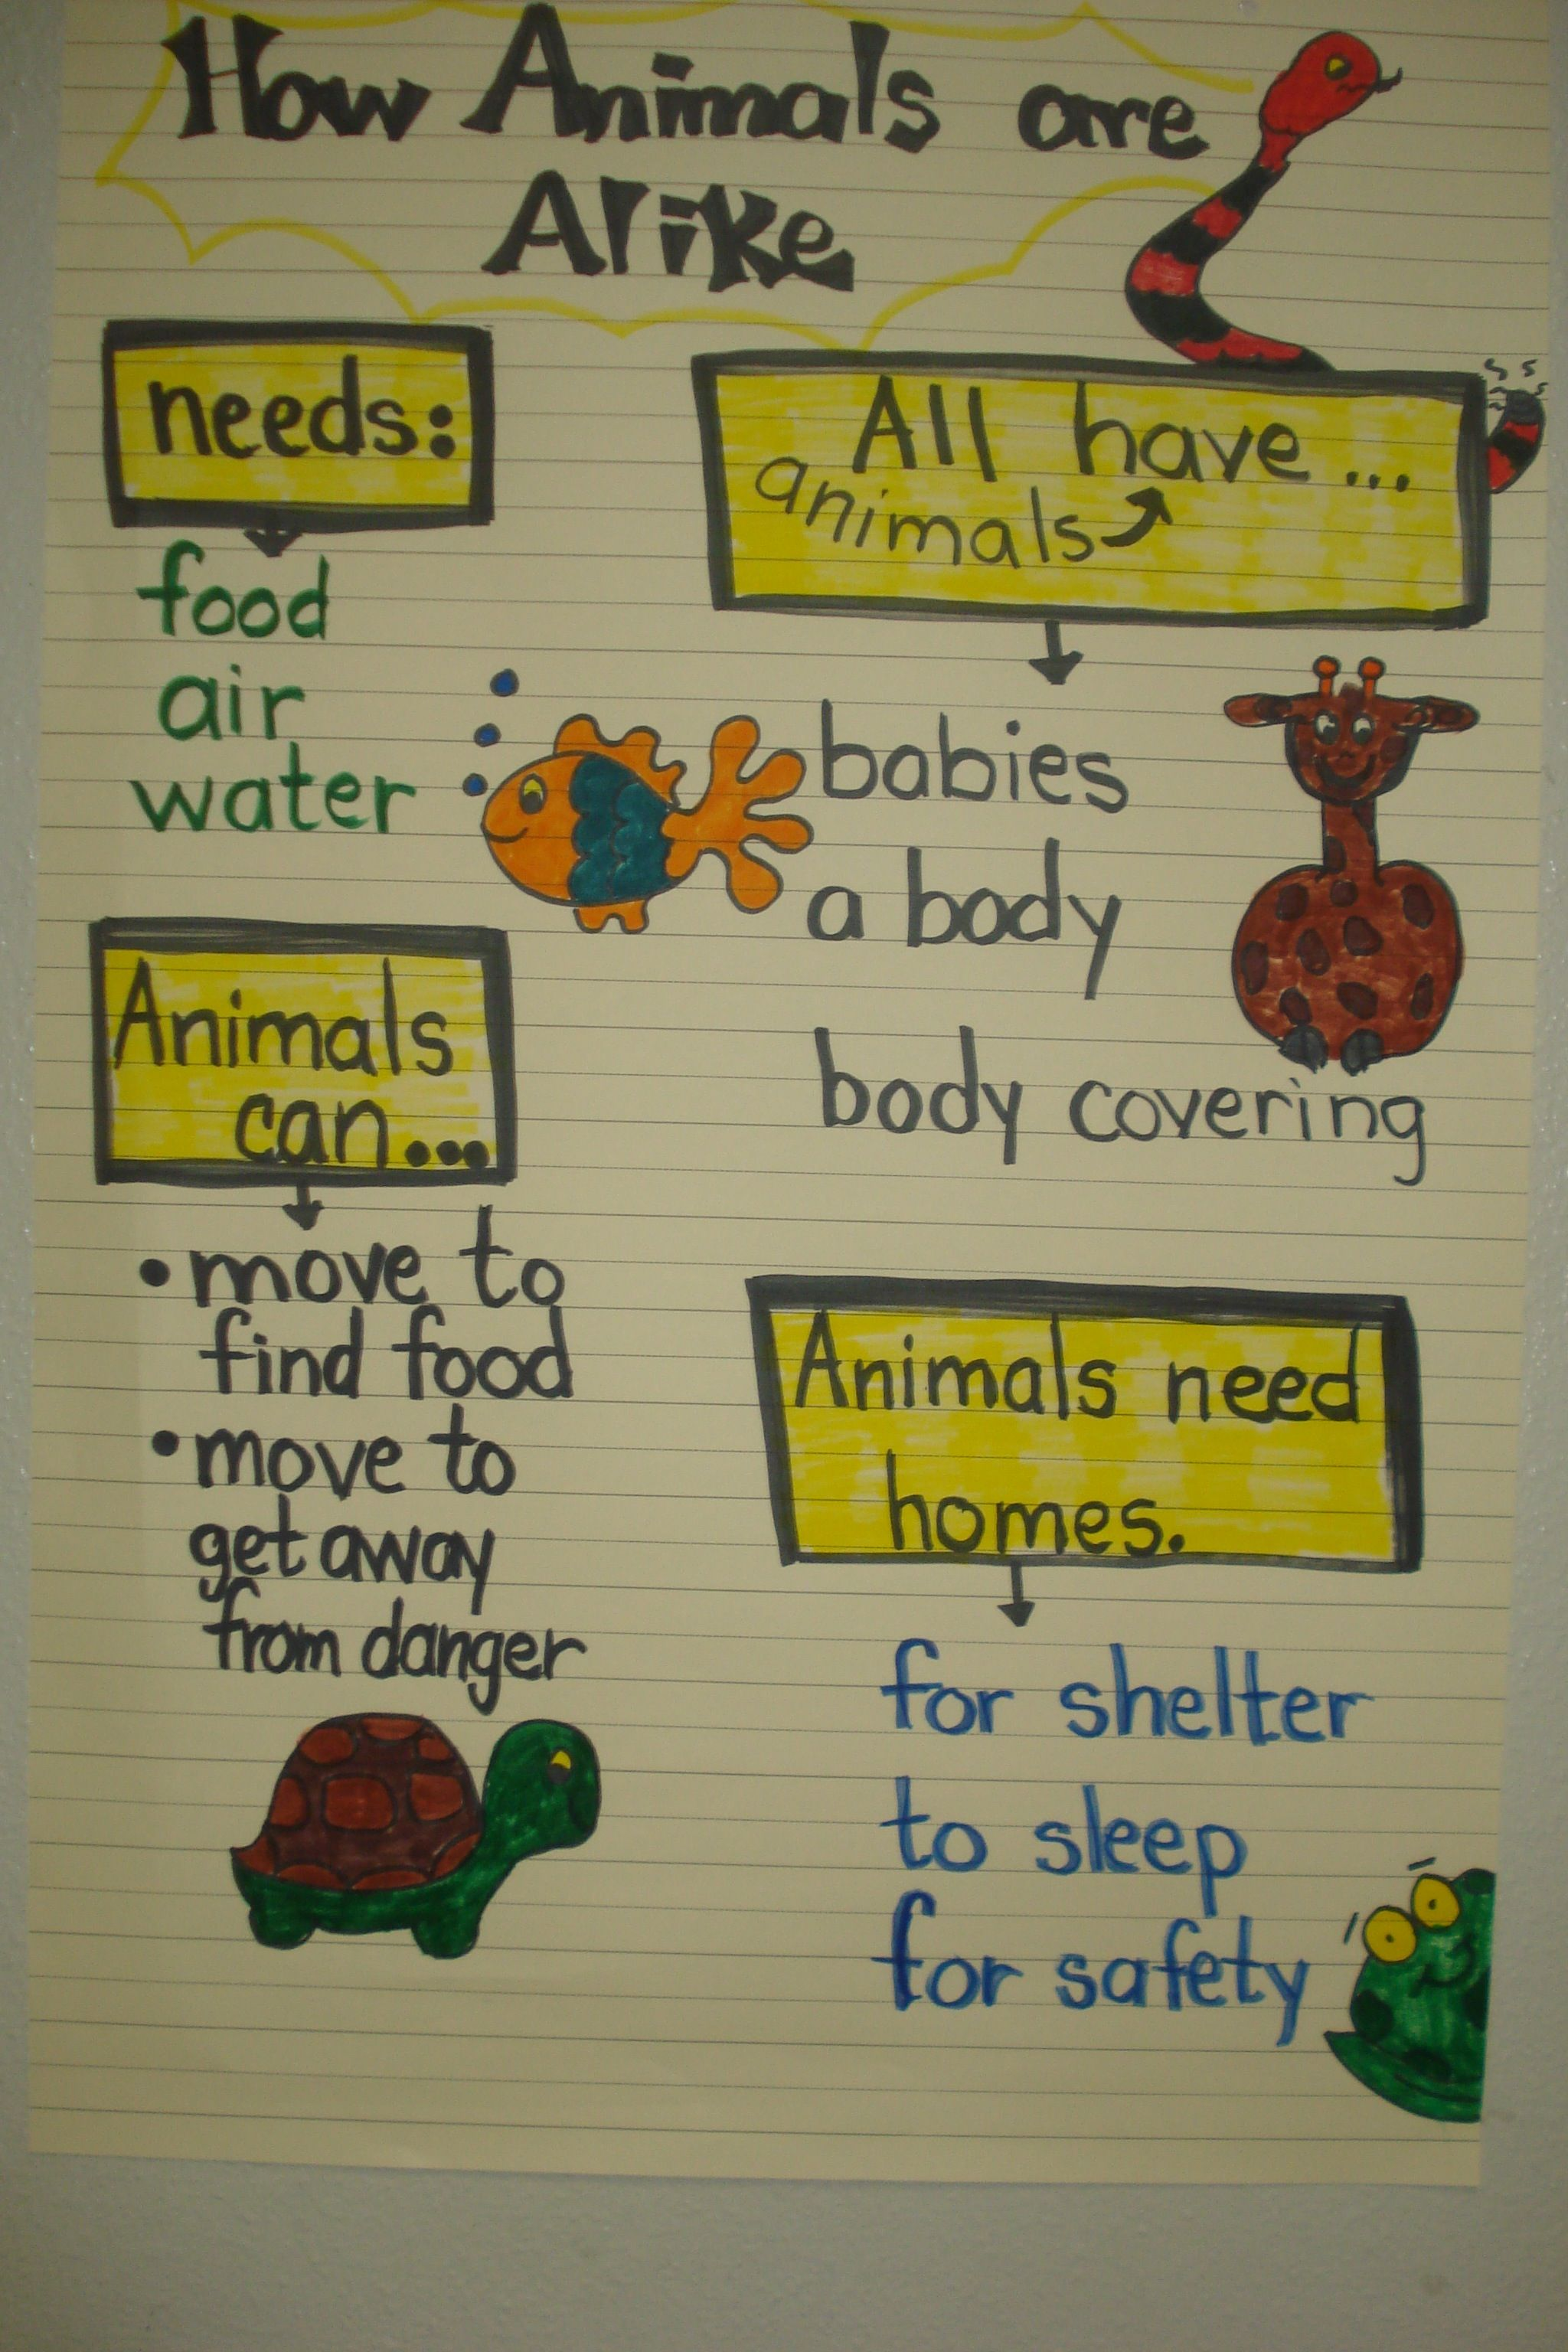 Animals Are Alike Chart Created By Hildelisa Diaz At